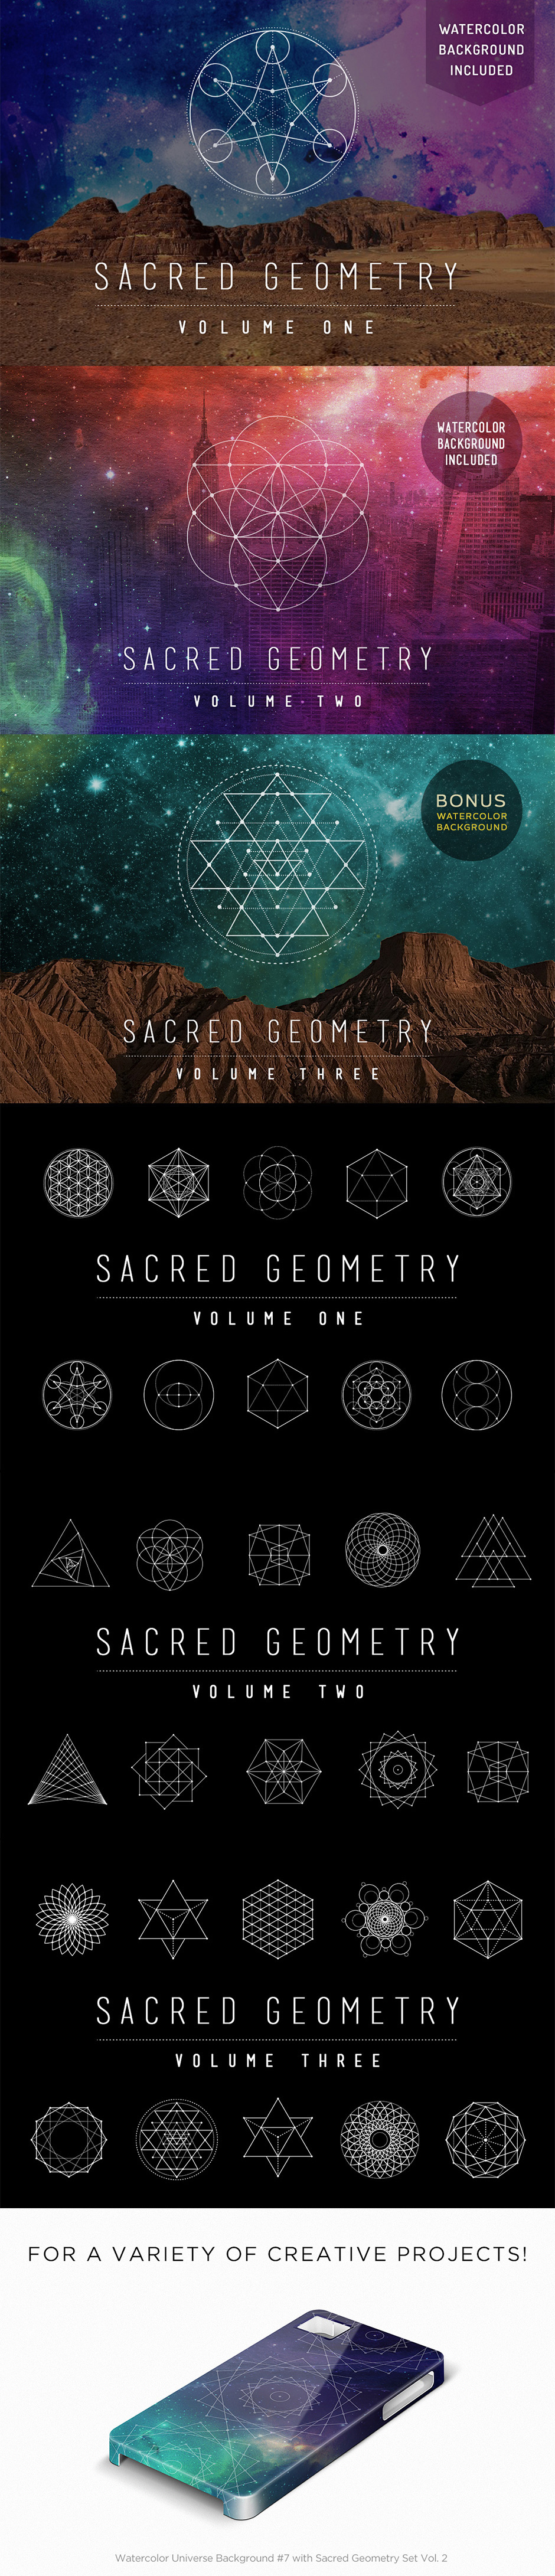 sacred-geometry-vector-bundle